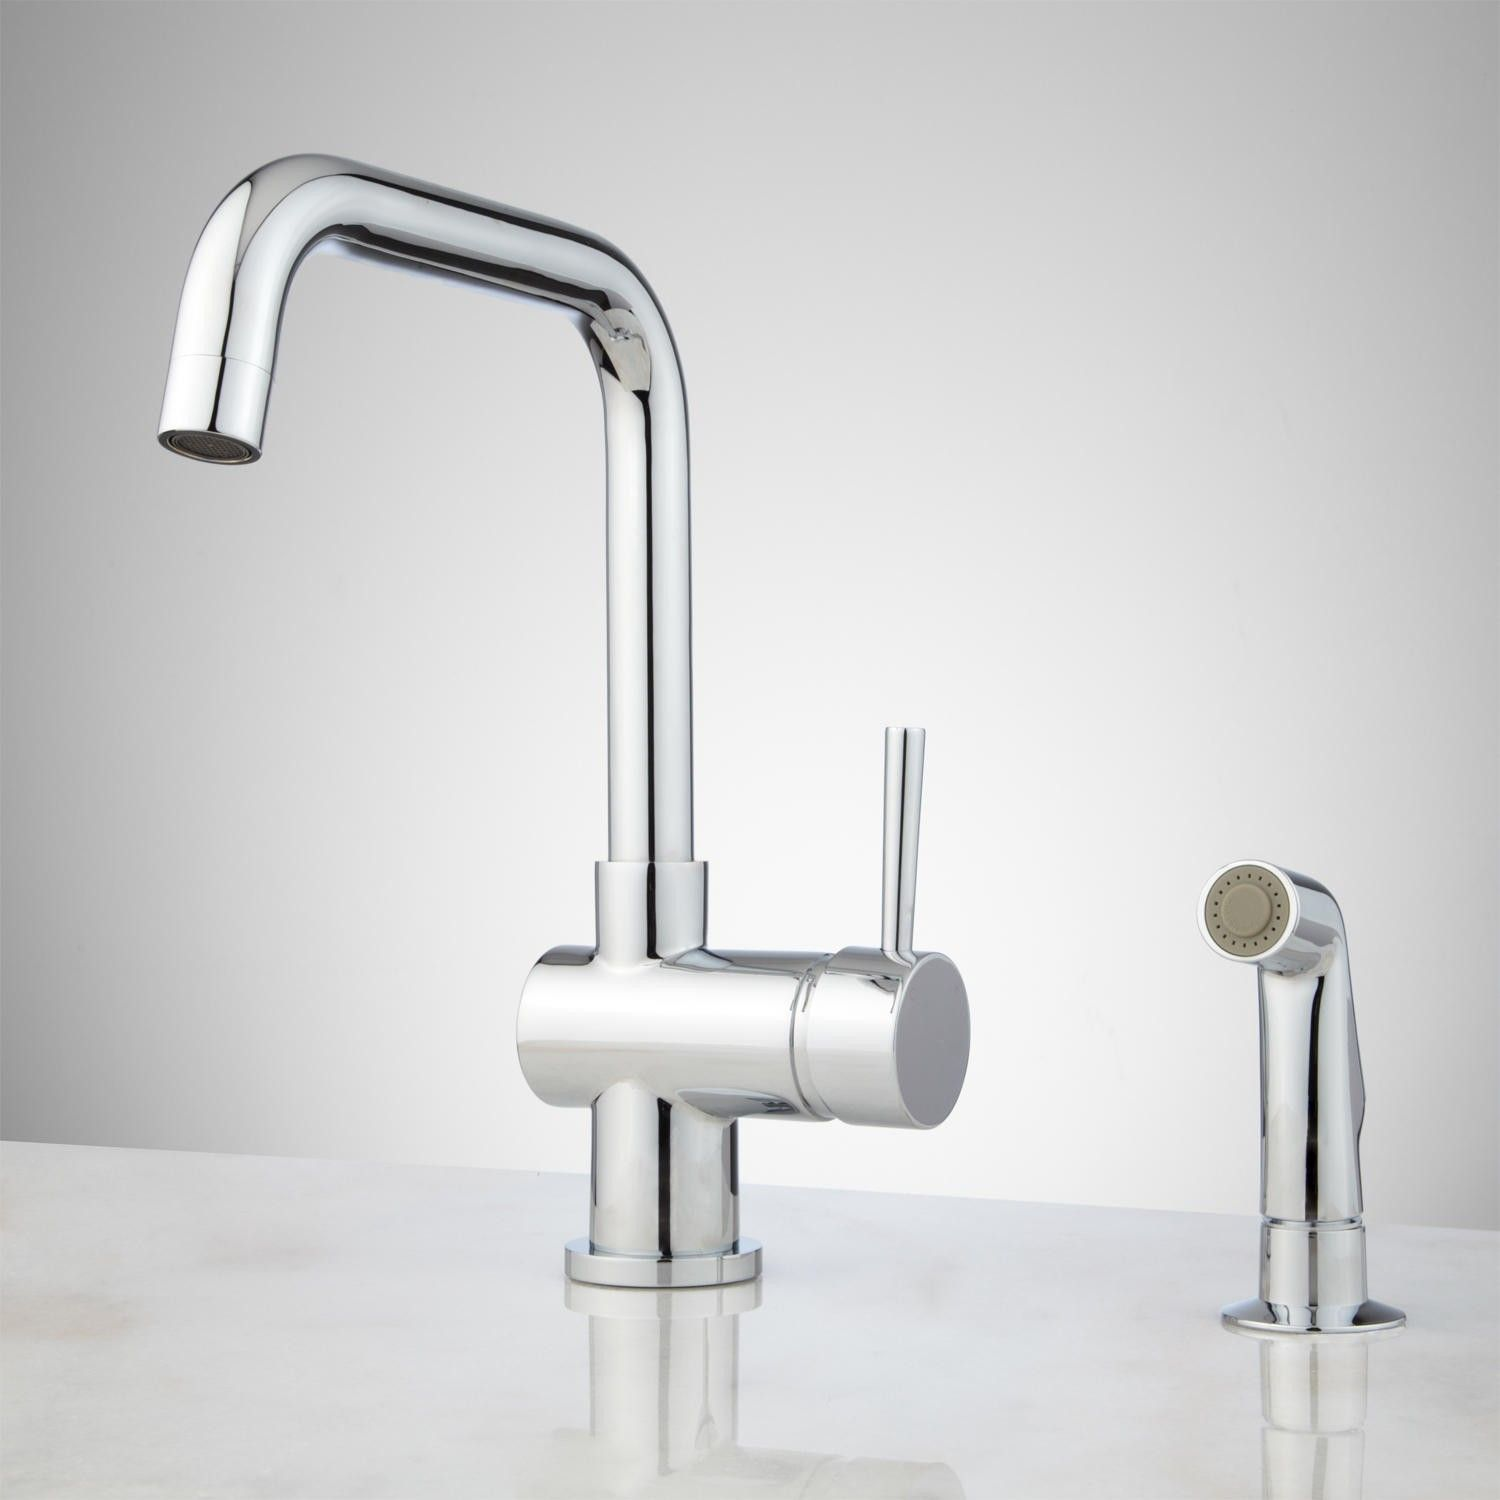 Lolita Single-Hole Kitchen Faucet with Side Spray | Kitchen faucets ...